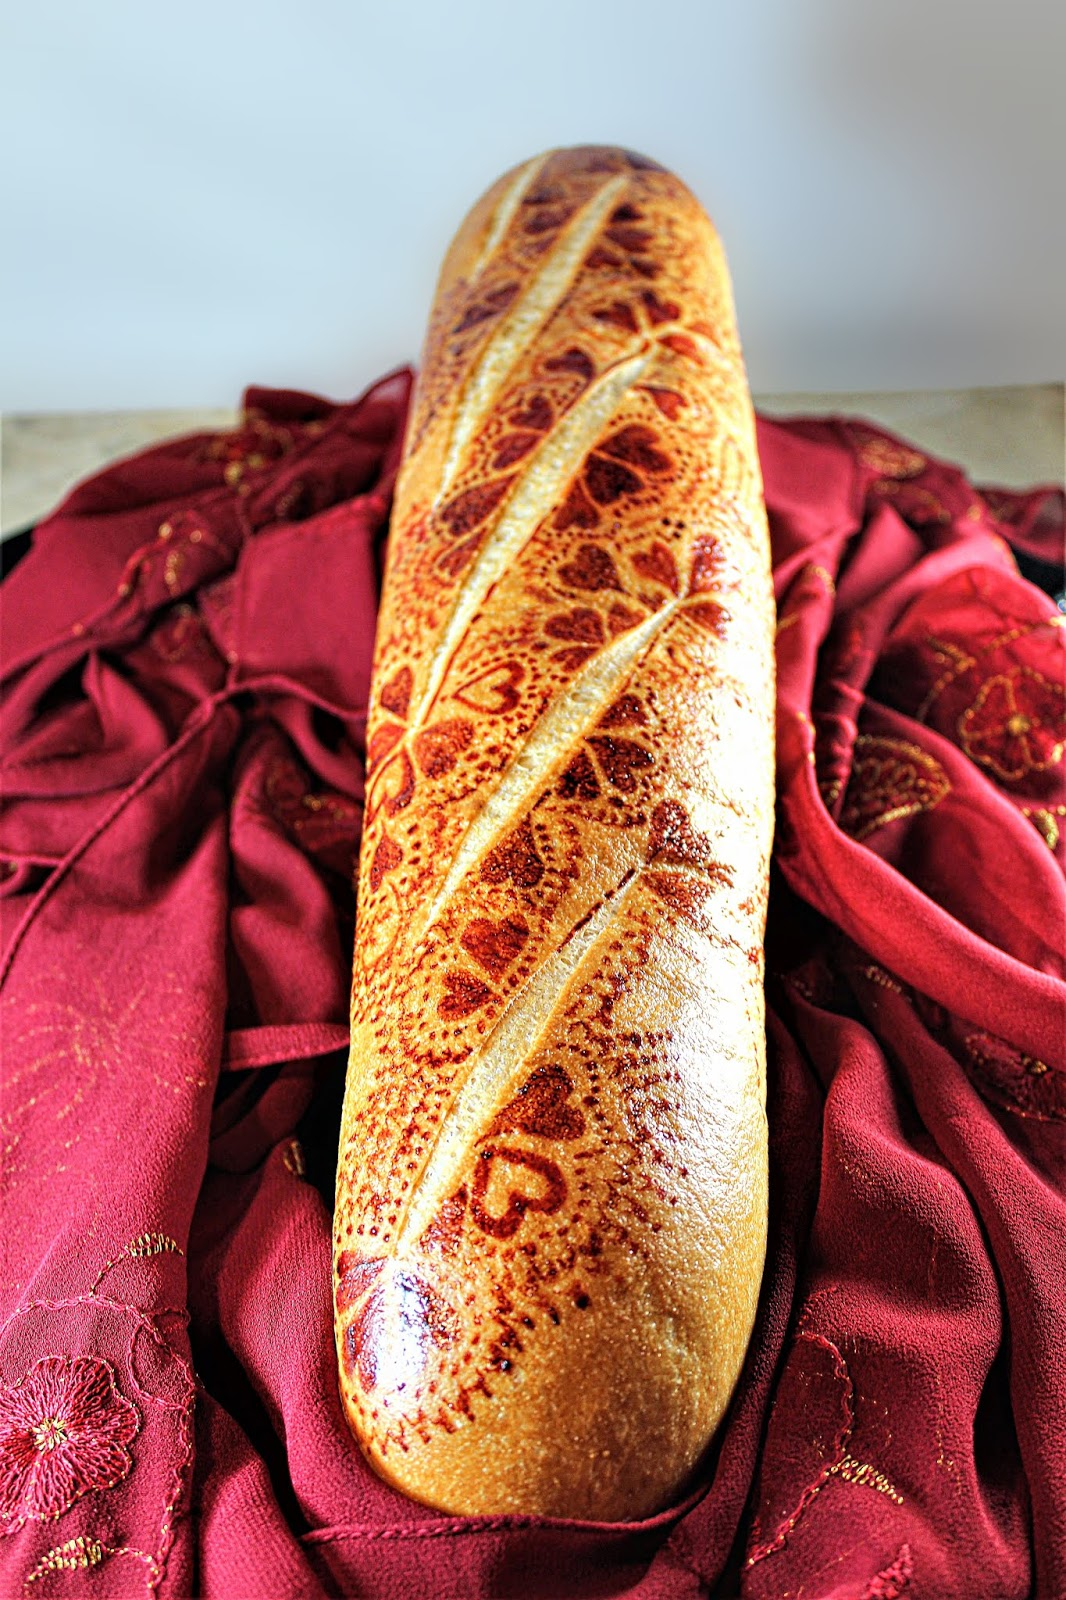 Chef Tess Bakeresse: My Decorative Bread from the